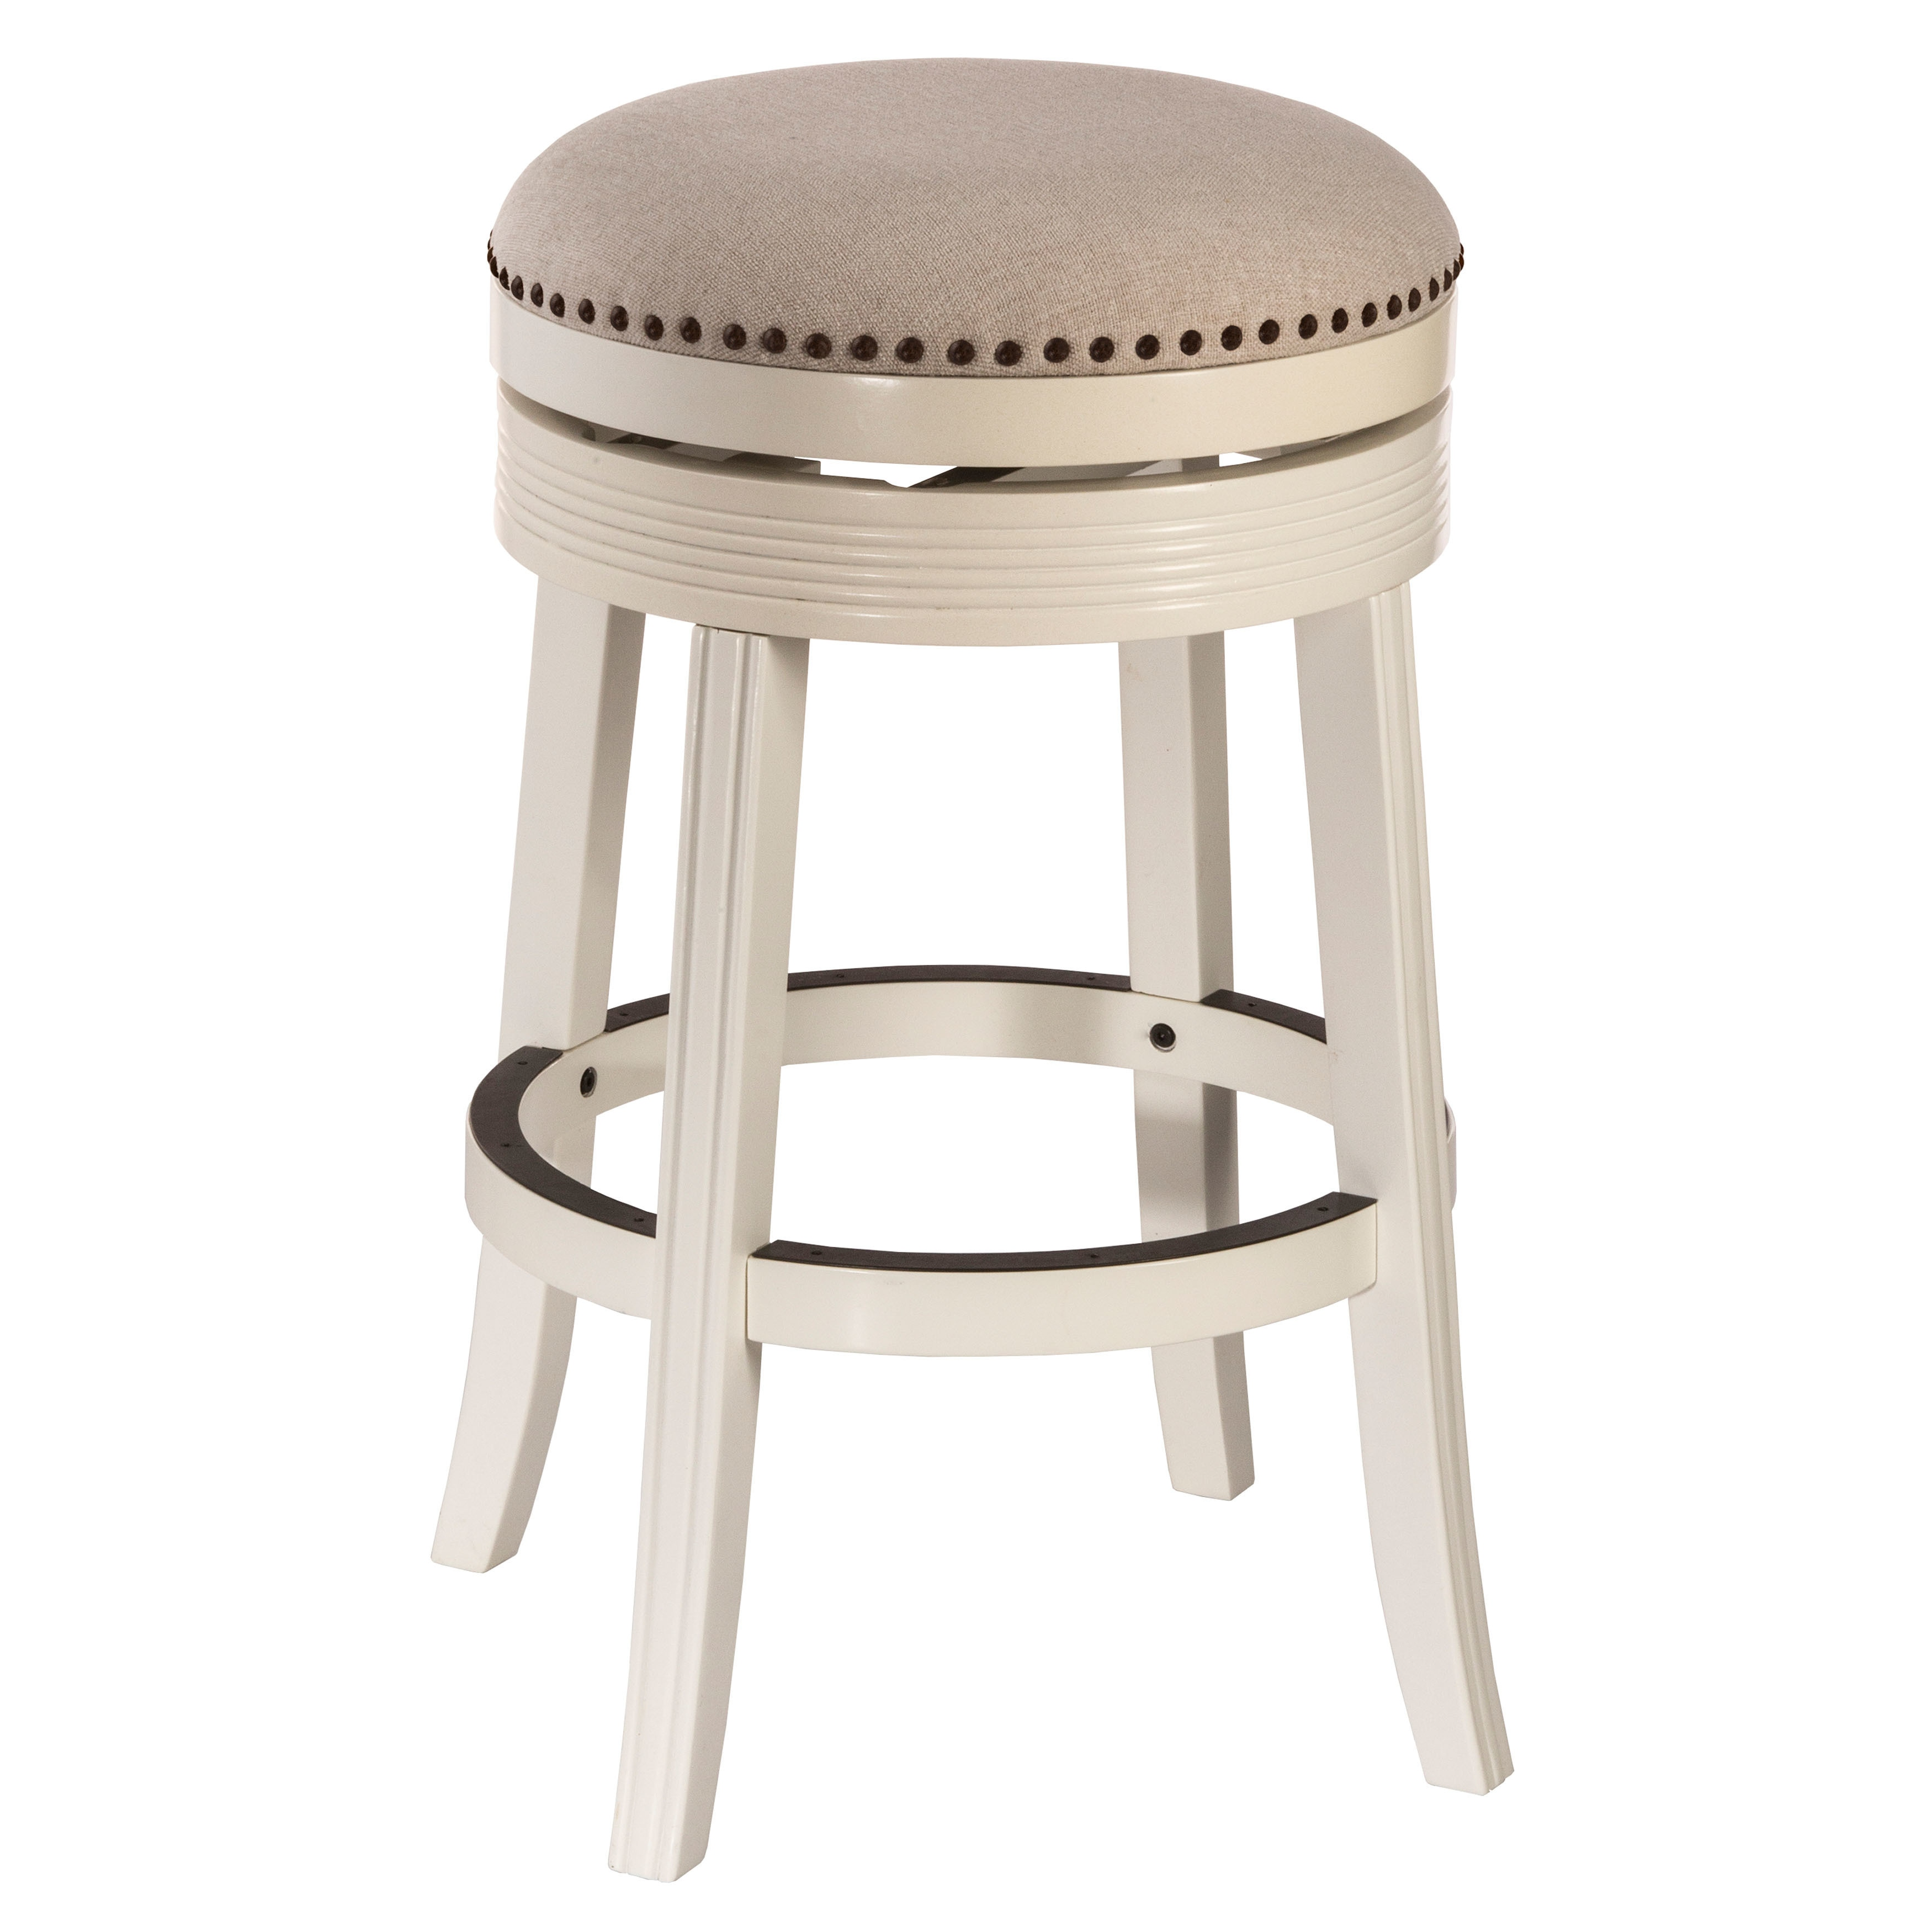 hillsdale furniture tillman white finished wood backless swivel bar stool ebay. Black Bedroom Furniture Sets. Home Design Ideas